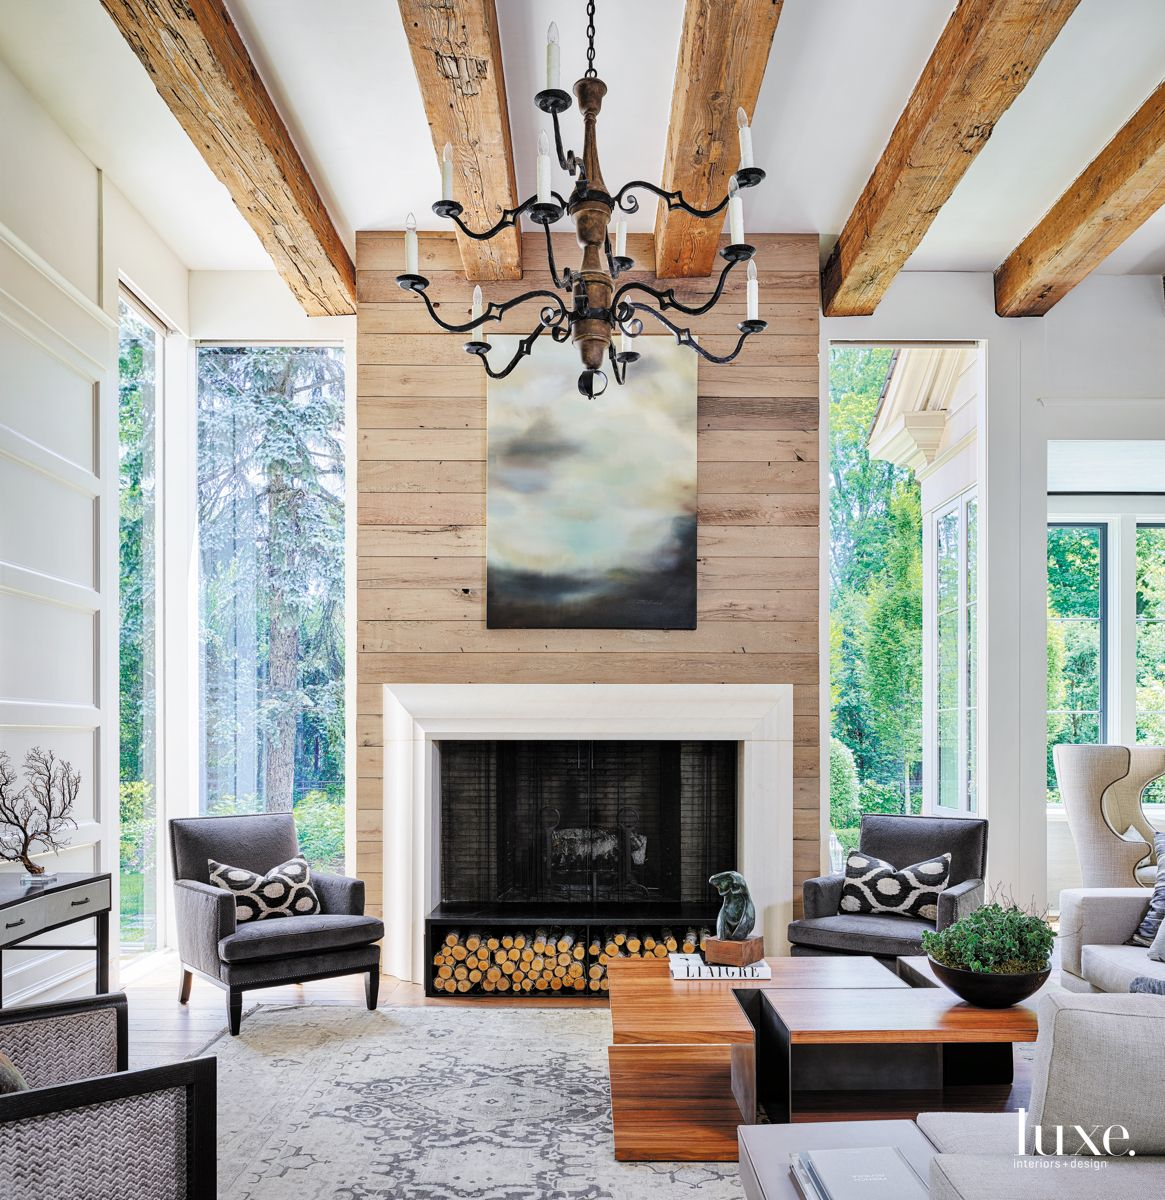 Great Room for Living and Entertaining with Fireplace and Chandelier